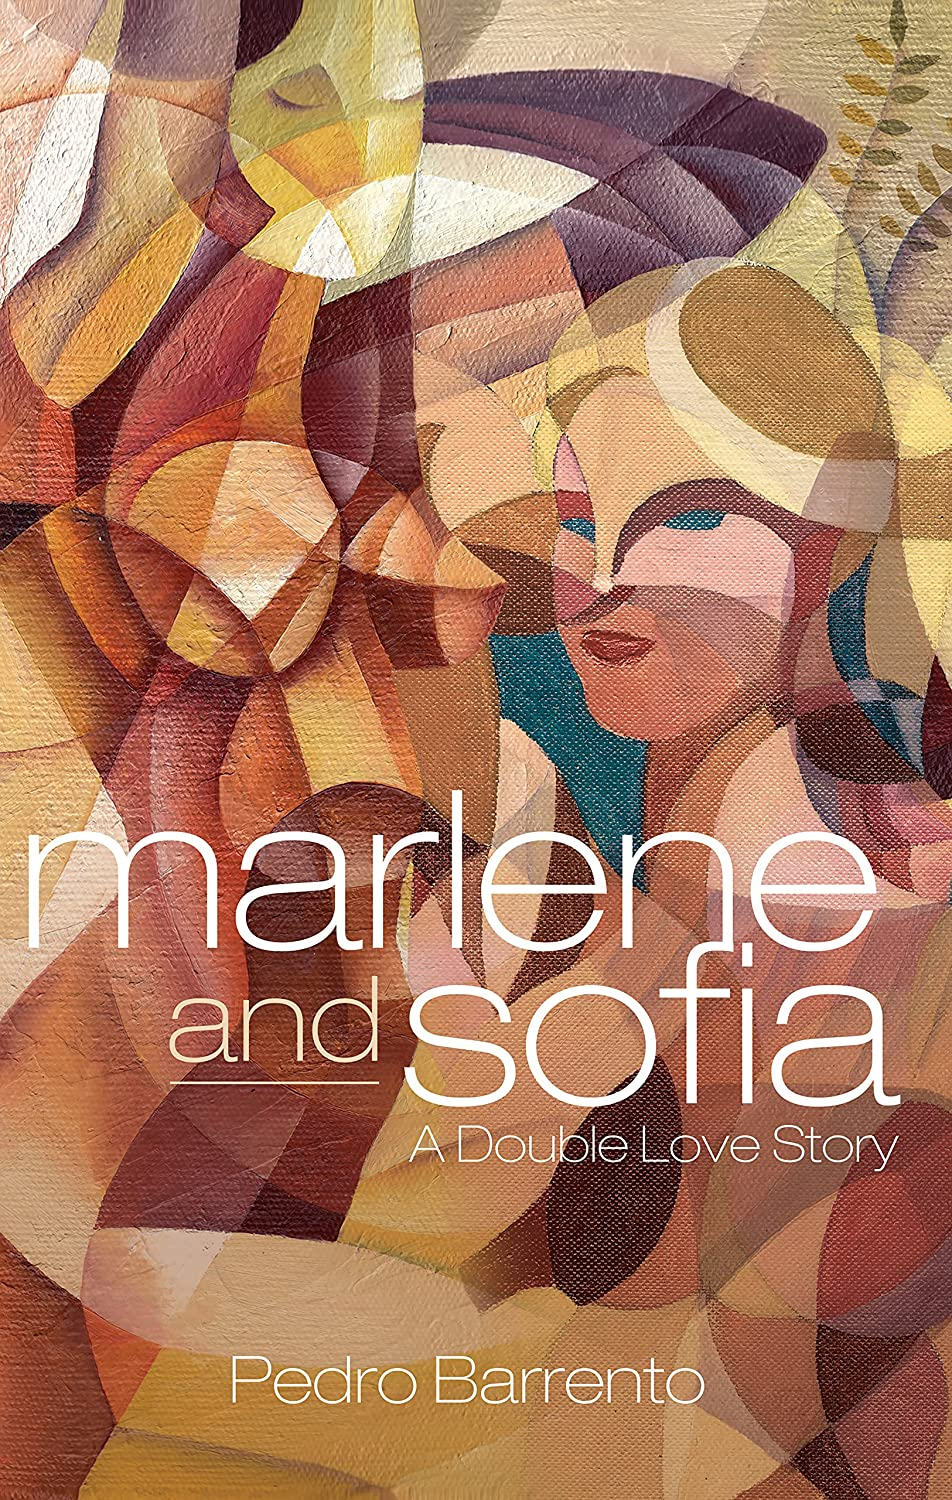 Marlene and Sofia - A Double Love Story by Pedro Barrento